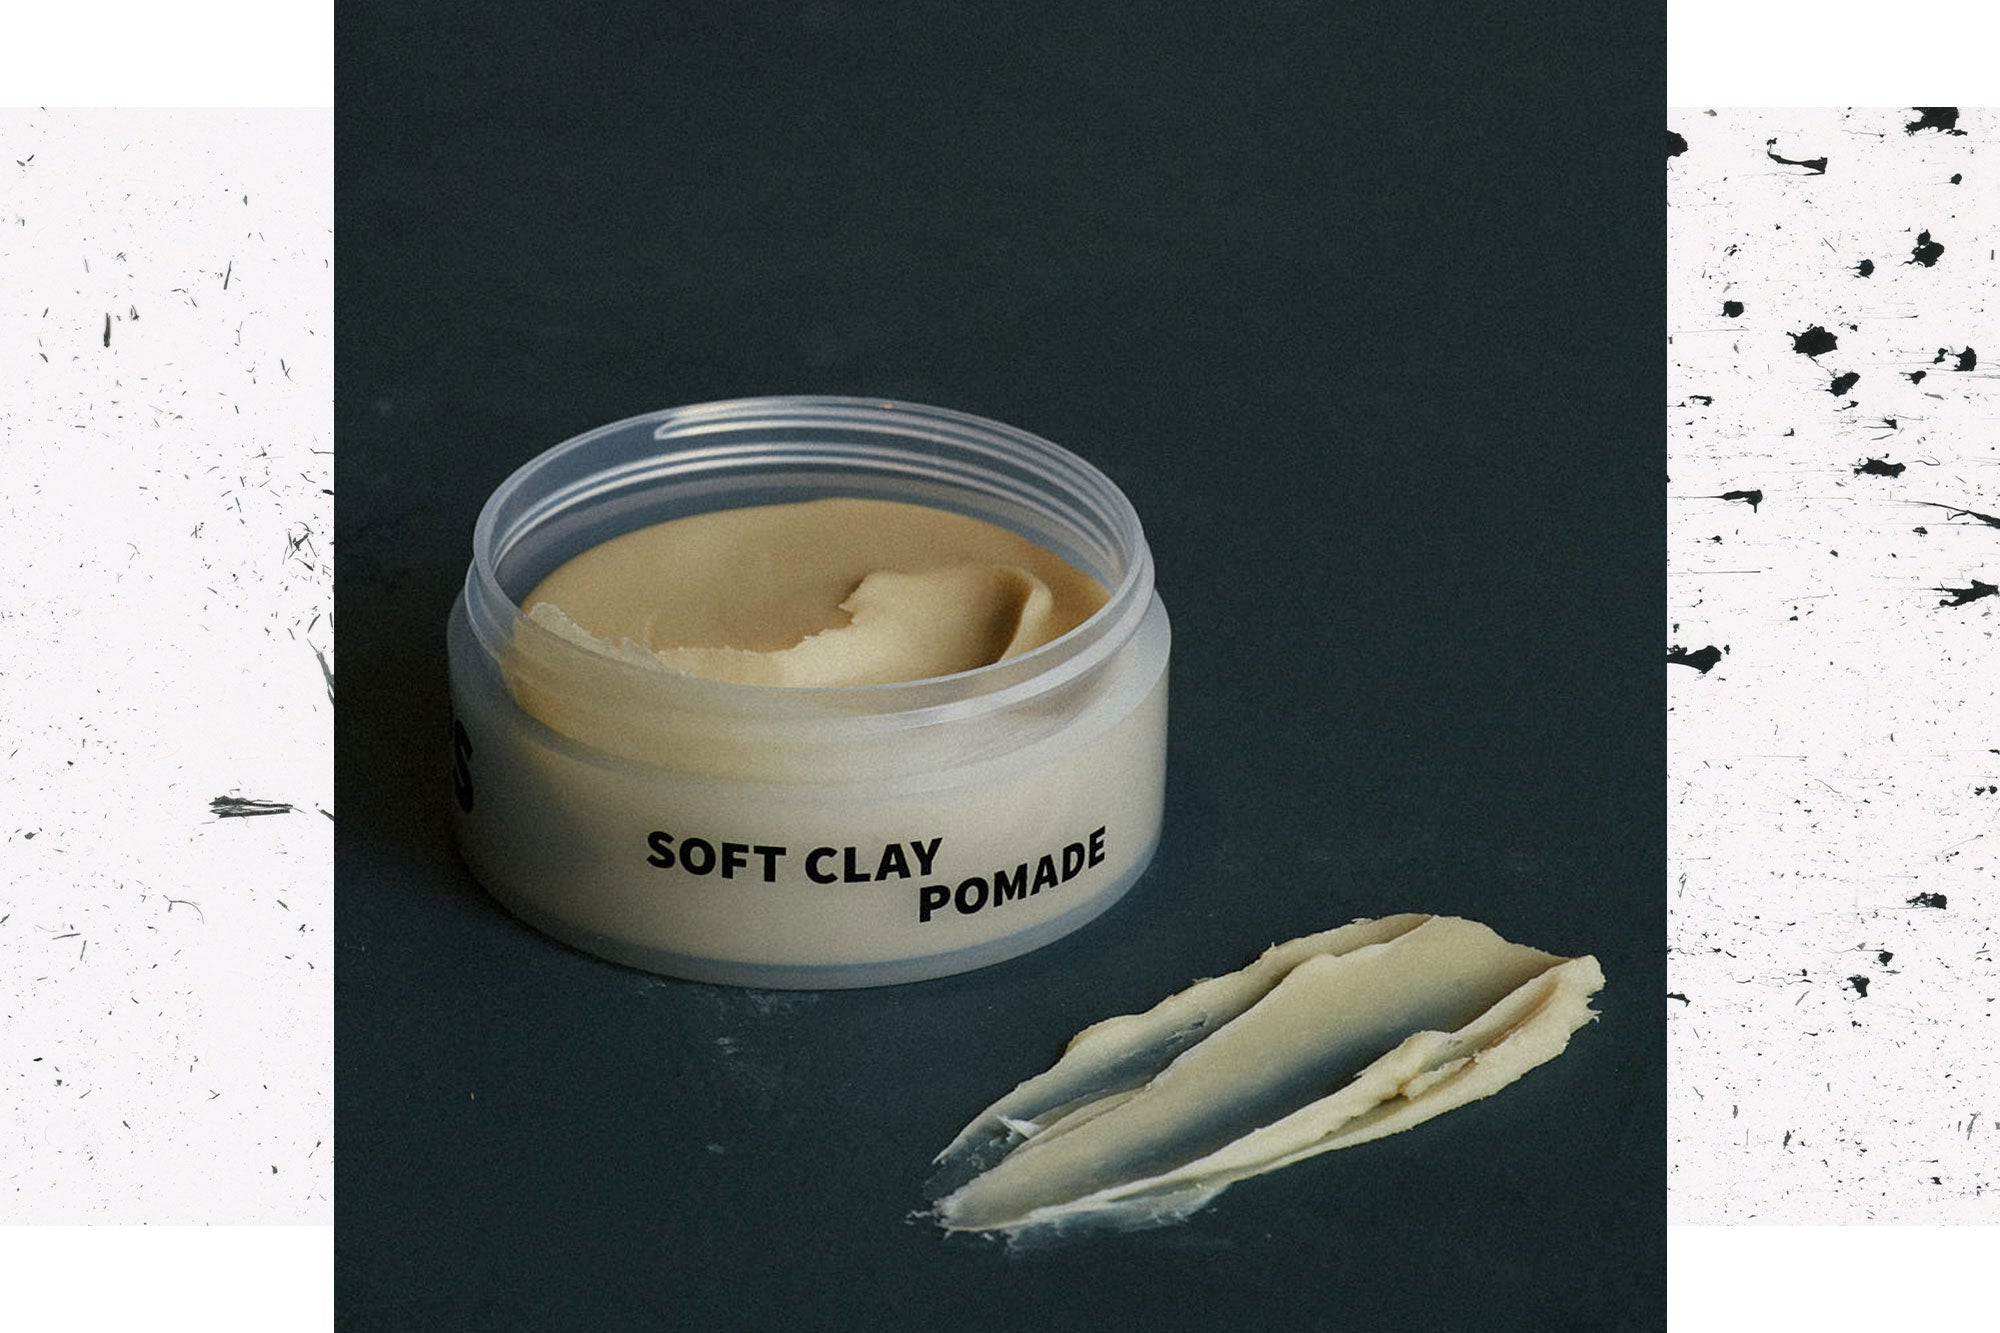 Image of Soft Clay Pomade on dark background with a swipe of product in the foreground